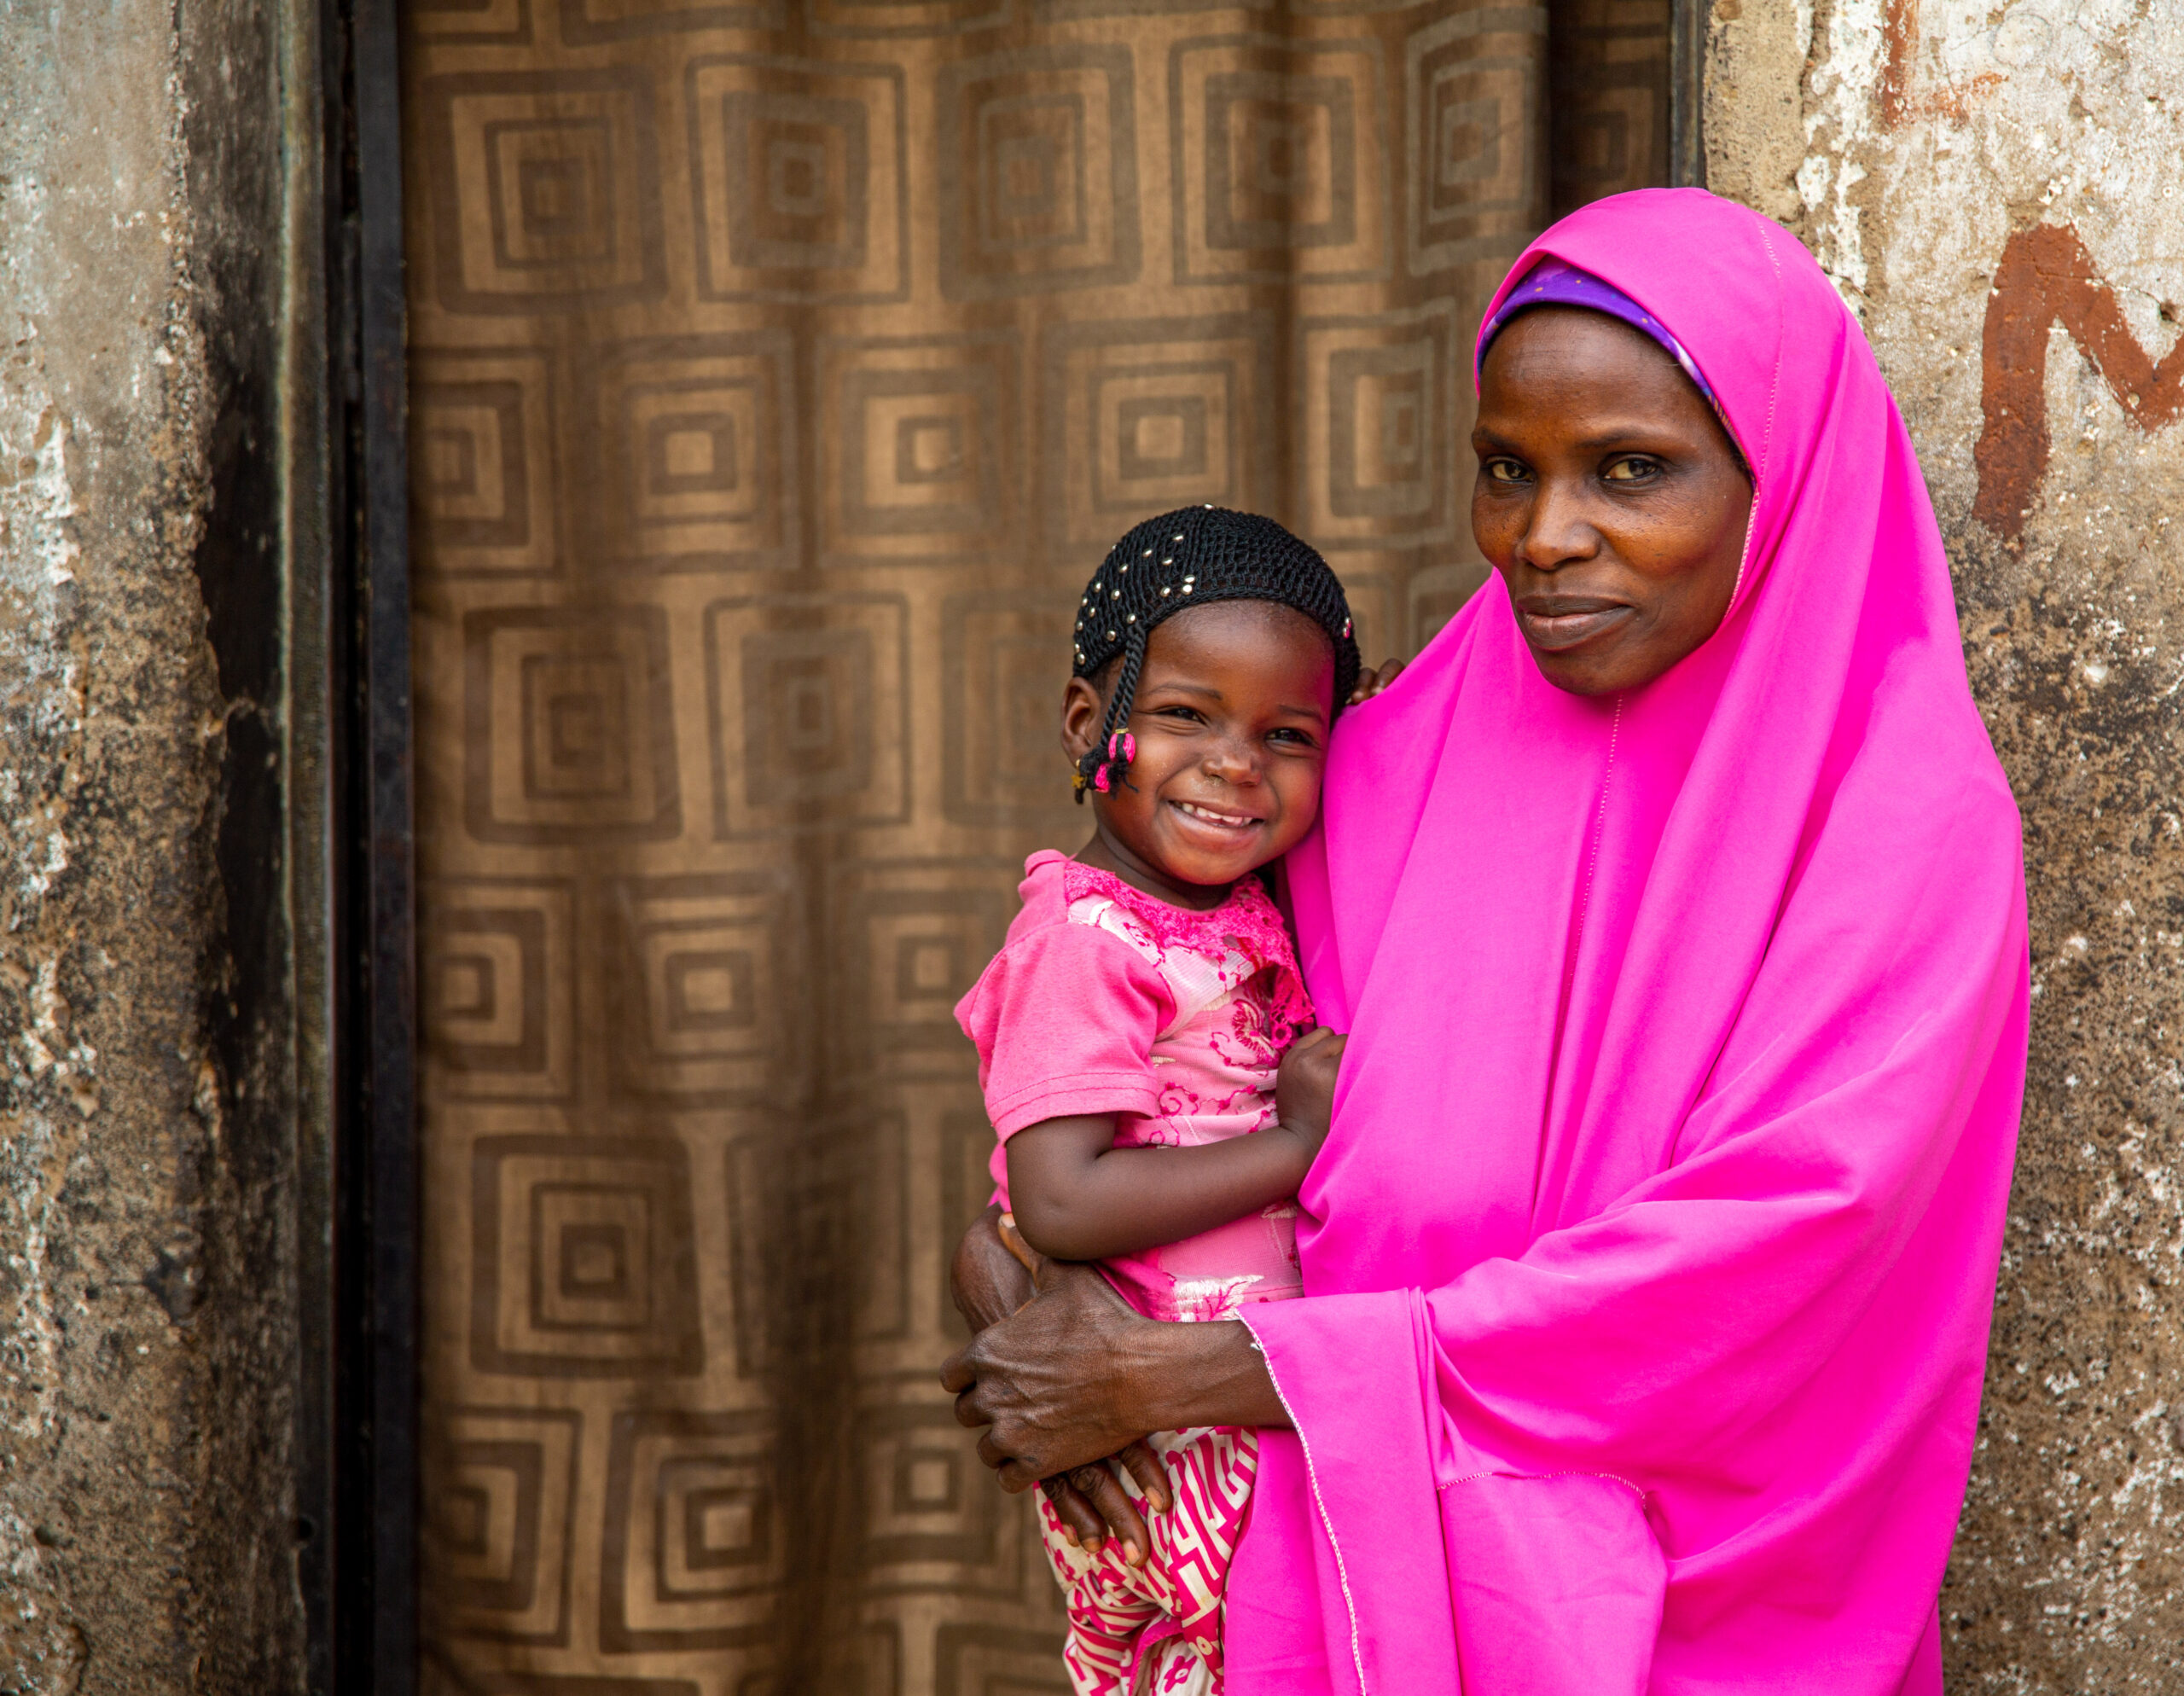 woman in full pink headscarf holding little girl